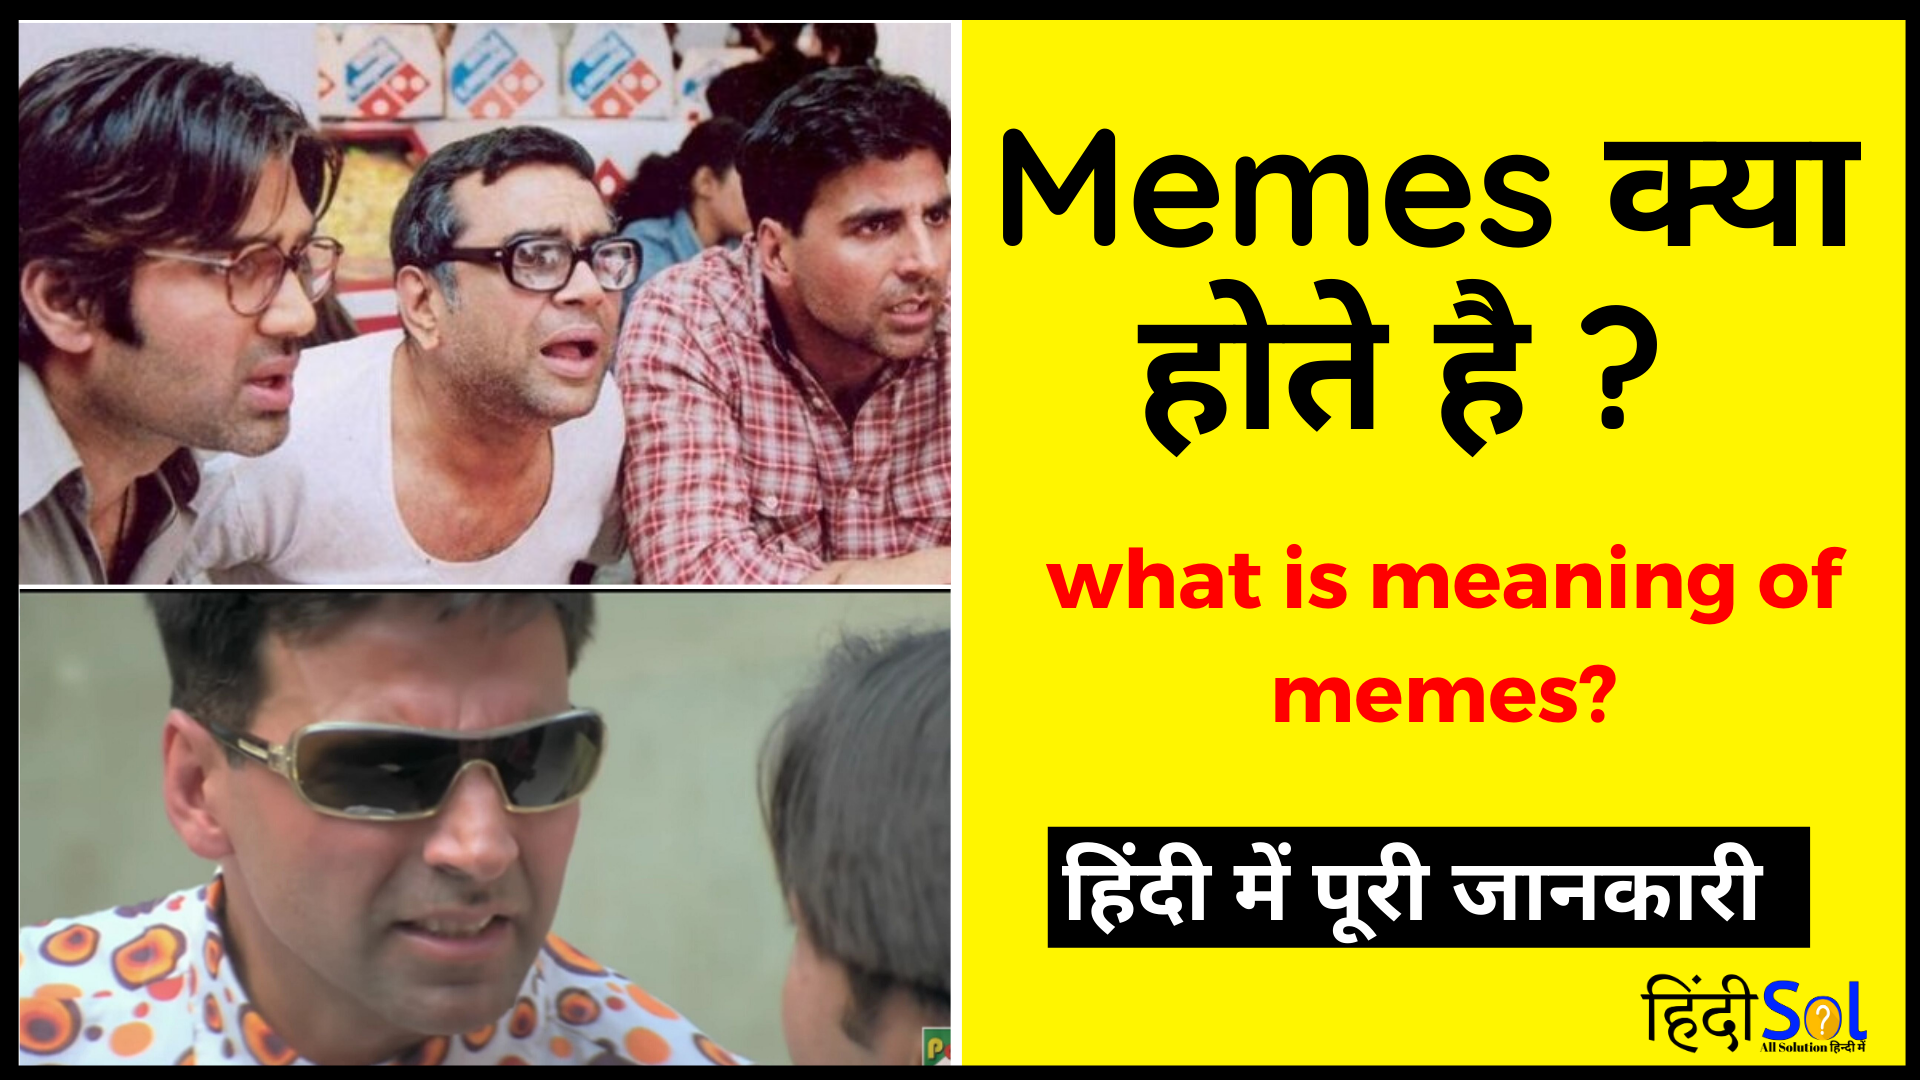 Memes Meaning In Hindi Memes What Is Meant Meant To Be